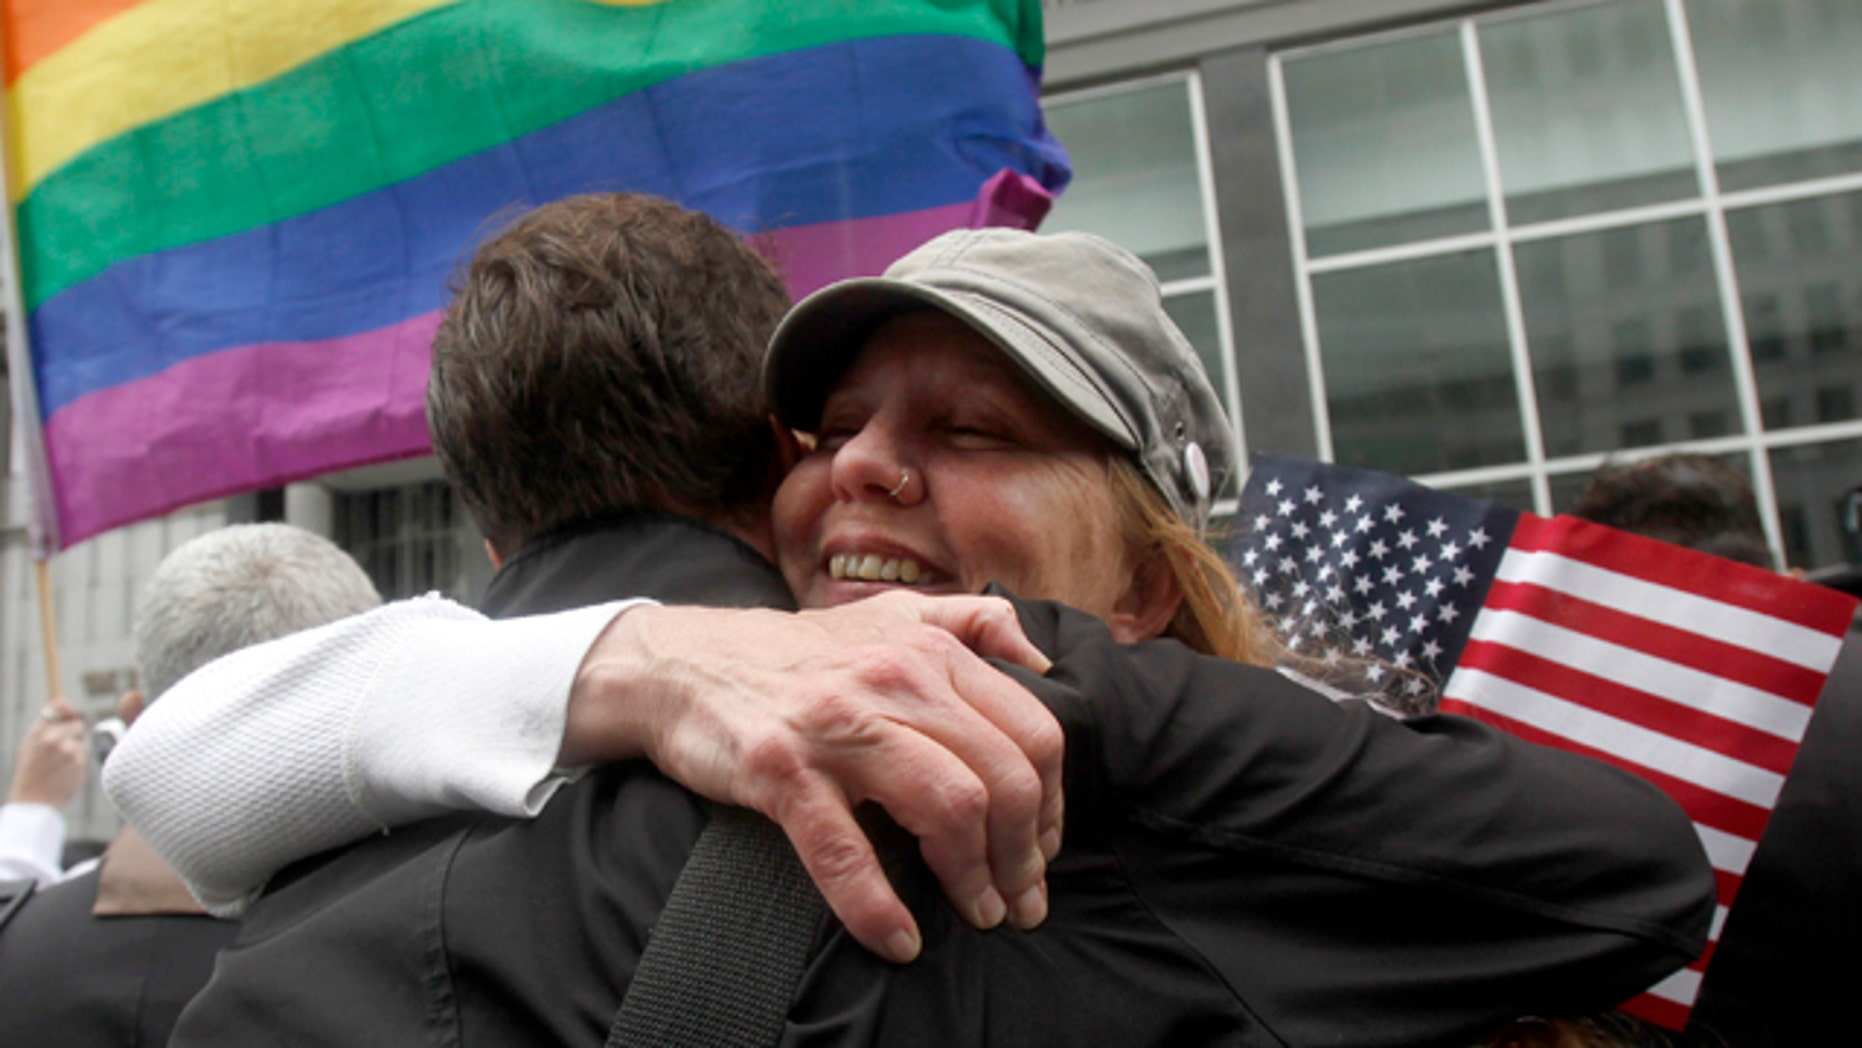 Aug. 4, 2010: Sheree Red Bornand, right, hugs Aidan Dunn after hearing the decision in the United States District Court proceedings challenging Proposition 8 outside of the Phillip Burton Federal Building in San Francisco.